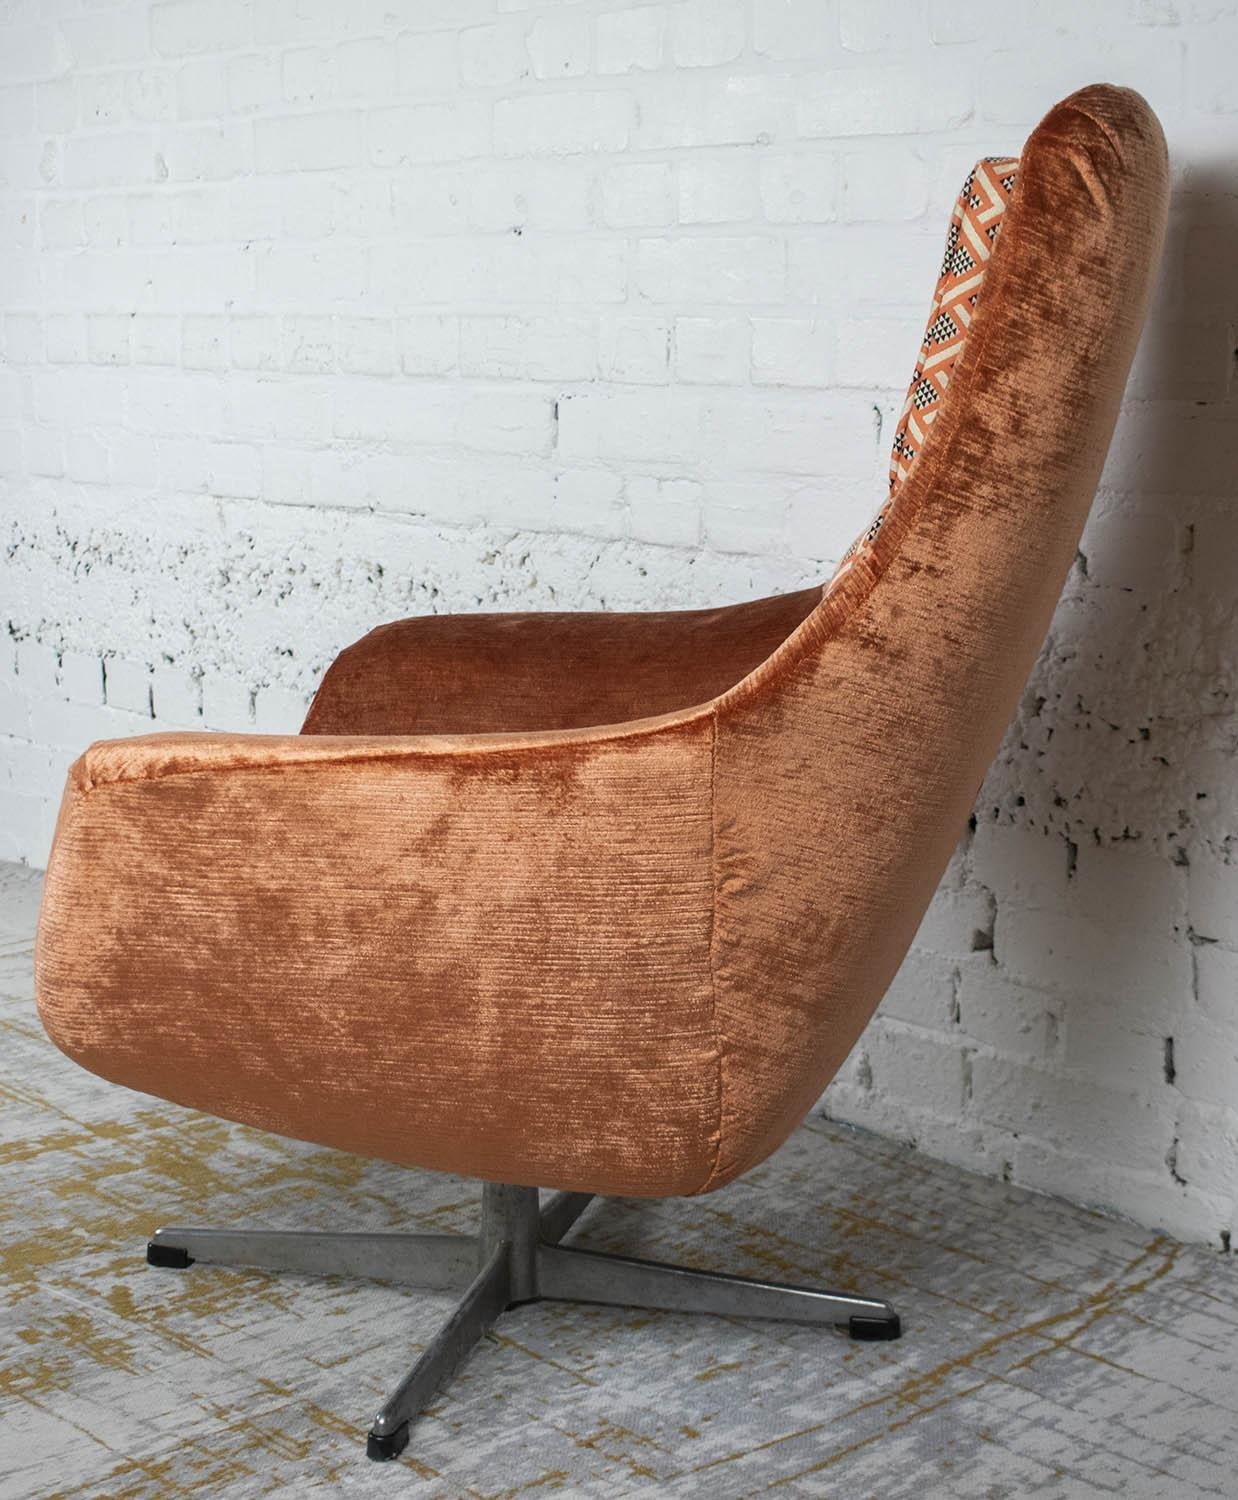 SWIVEL CHAIR, mid 20th century Swedish in Linwood peach, black and white geometric material and - Image 2 of 3